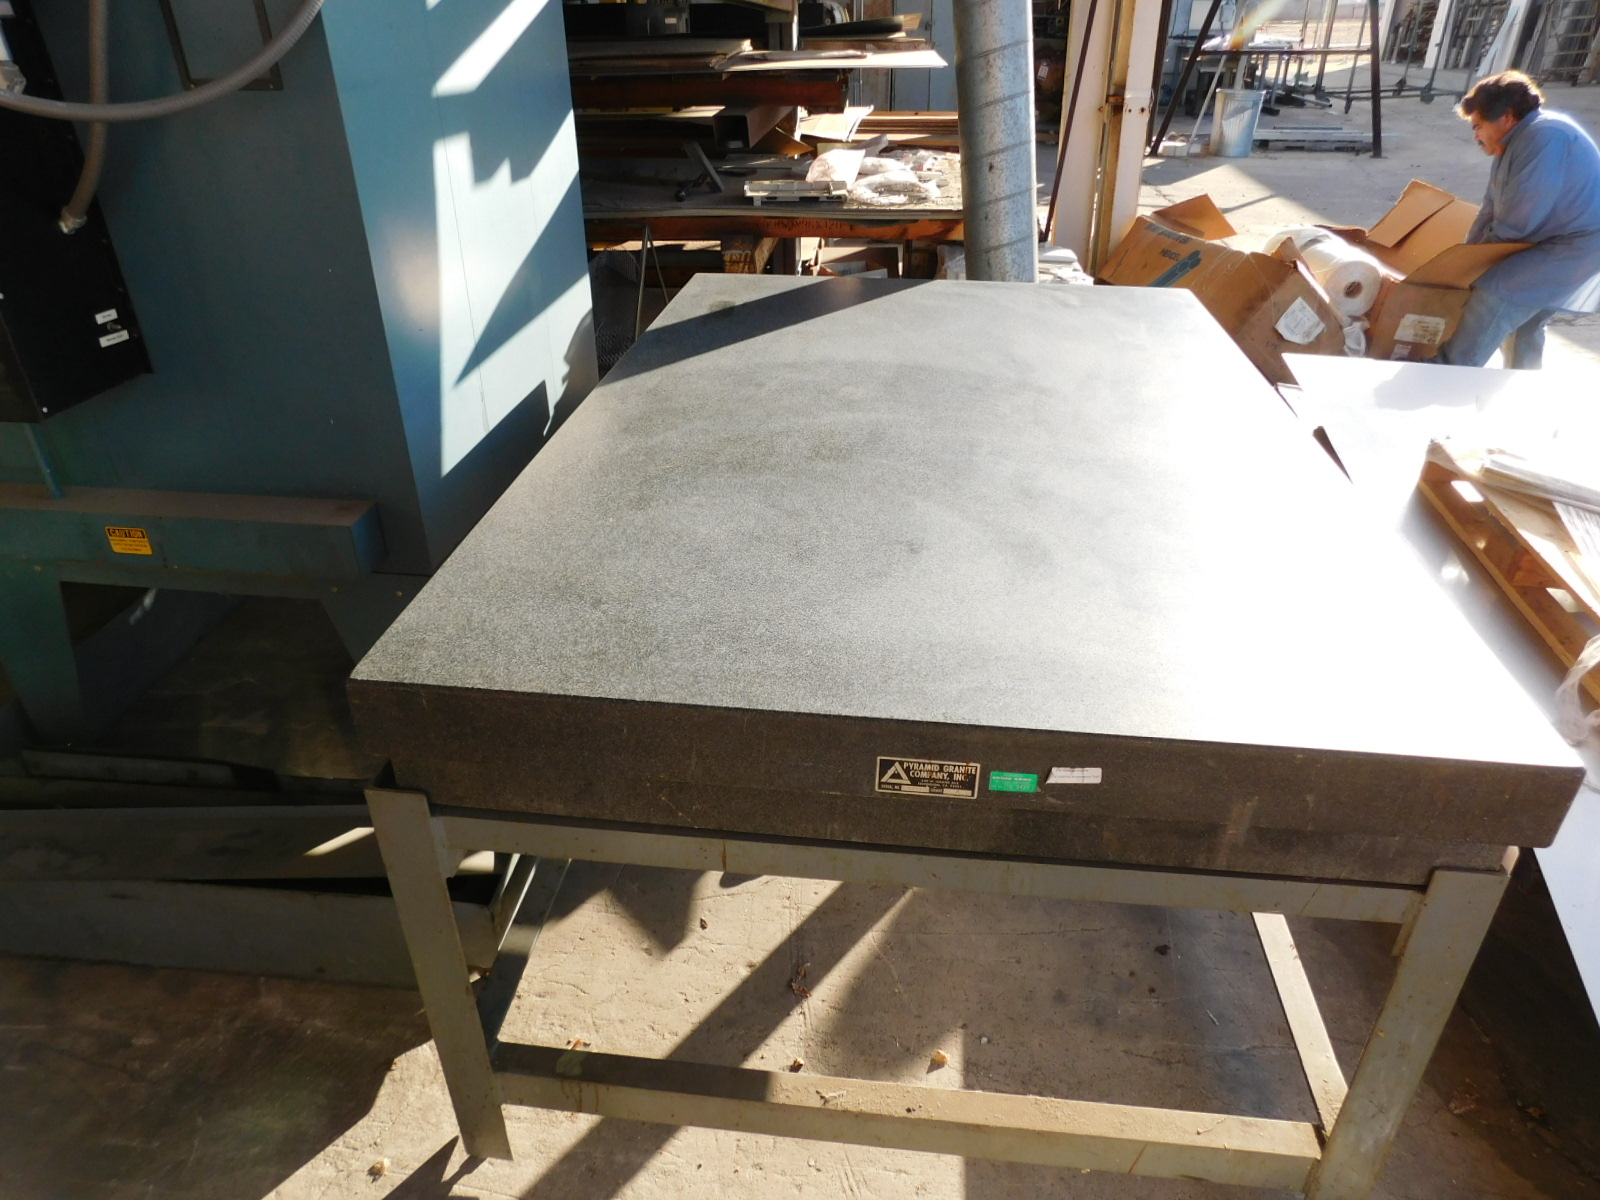 """Lot 26 - PYRAMID SURFACE PLATE, 4' X 6' X 8-1/4"""", GRADE A, S/N 5990, STEEL STAND"""